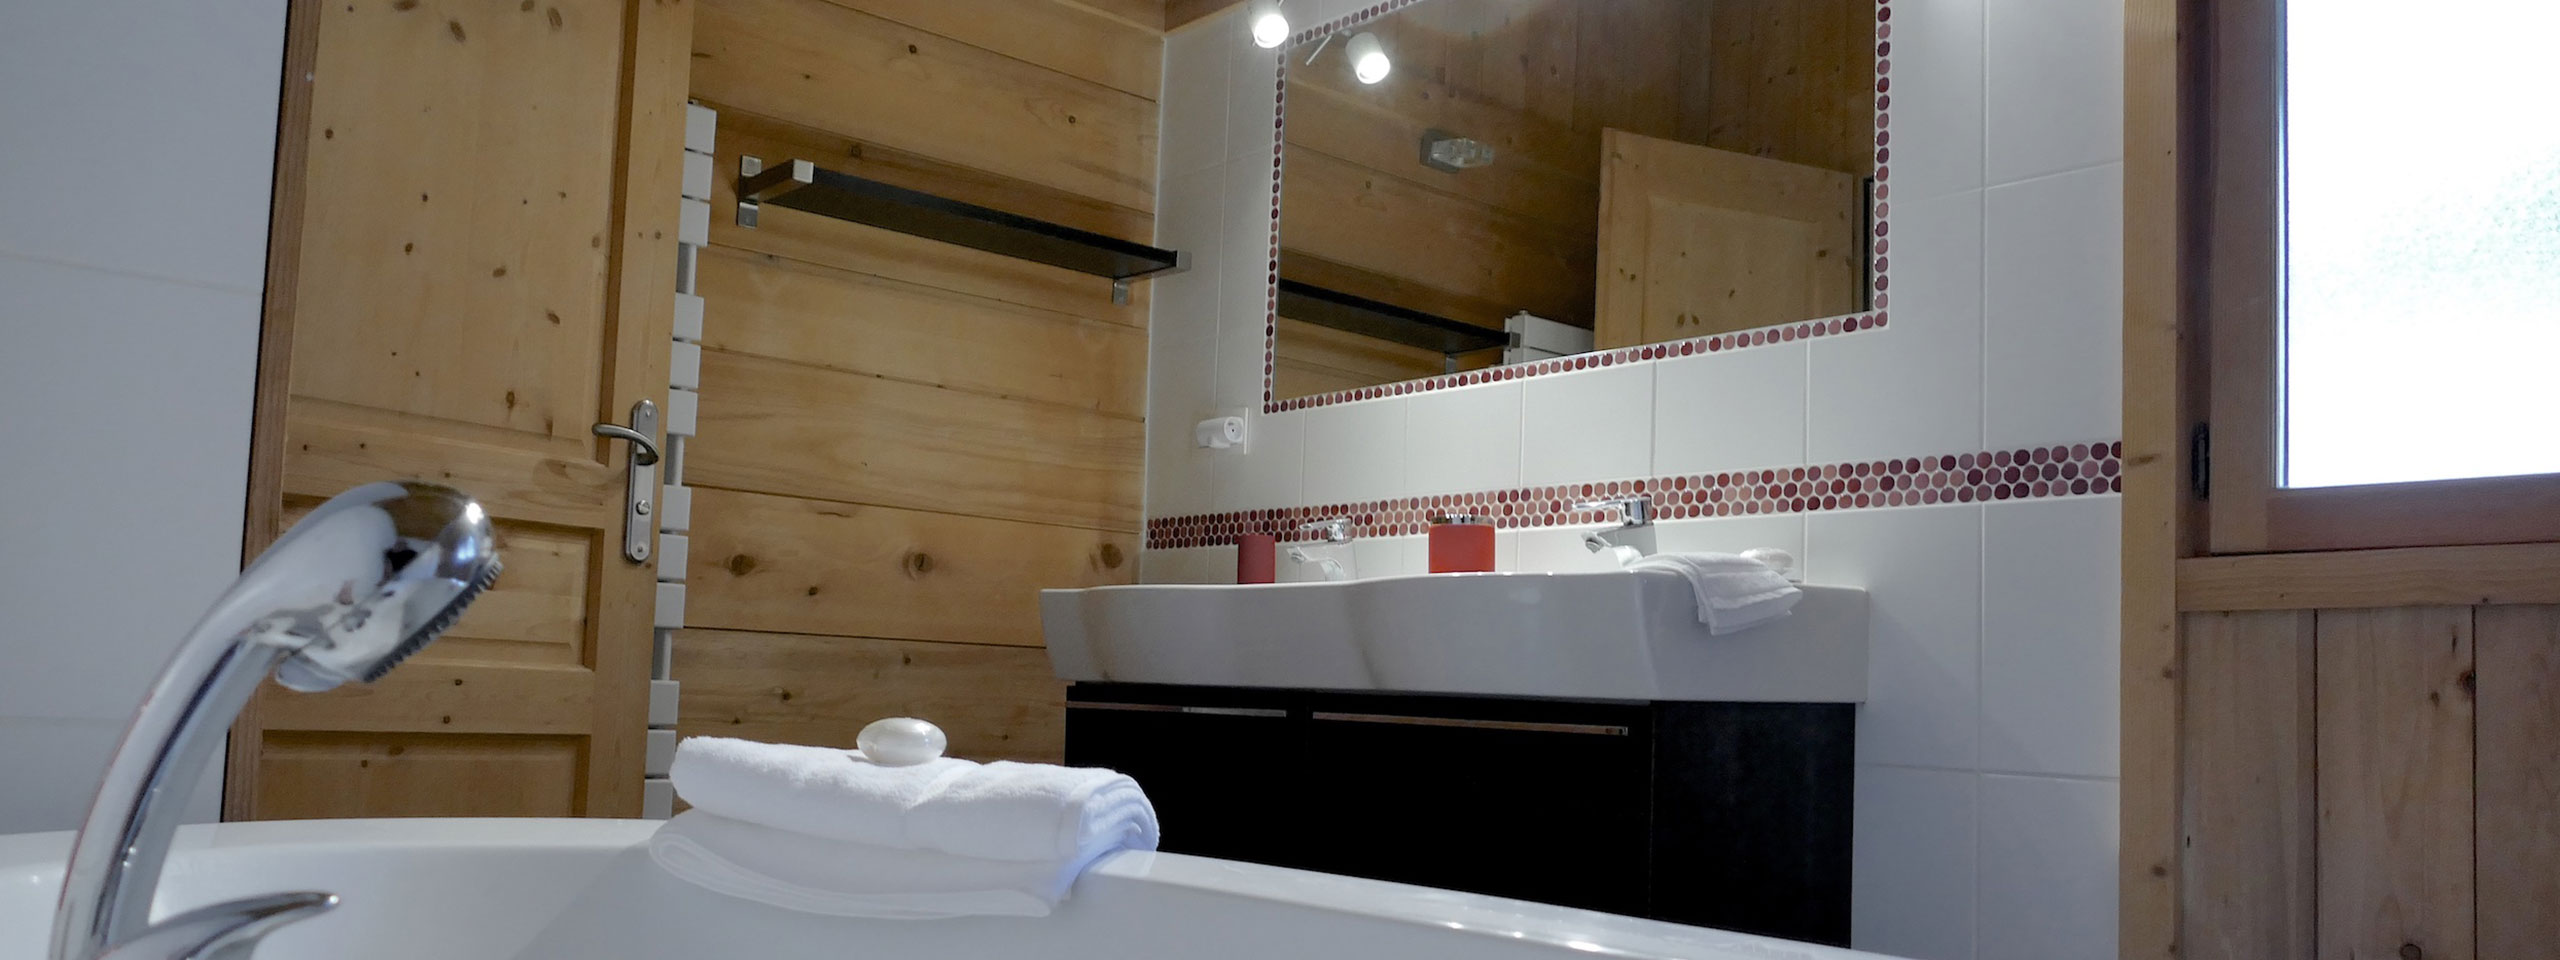 Salle De Bain Archi Expo ~ location chalet les 3 cimes blanches chamonix the chalet during summer